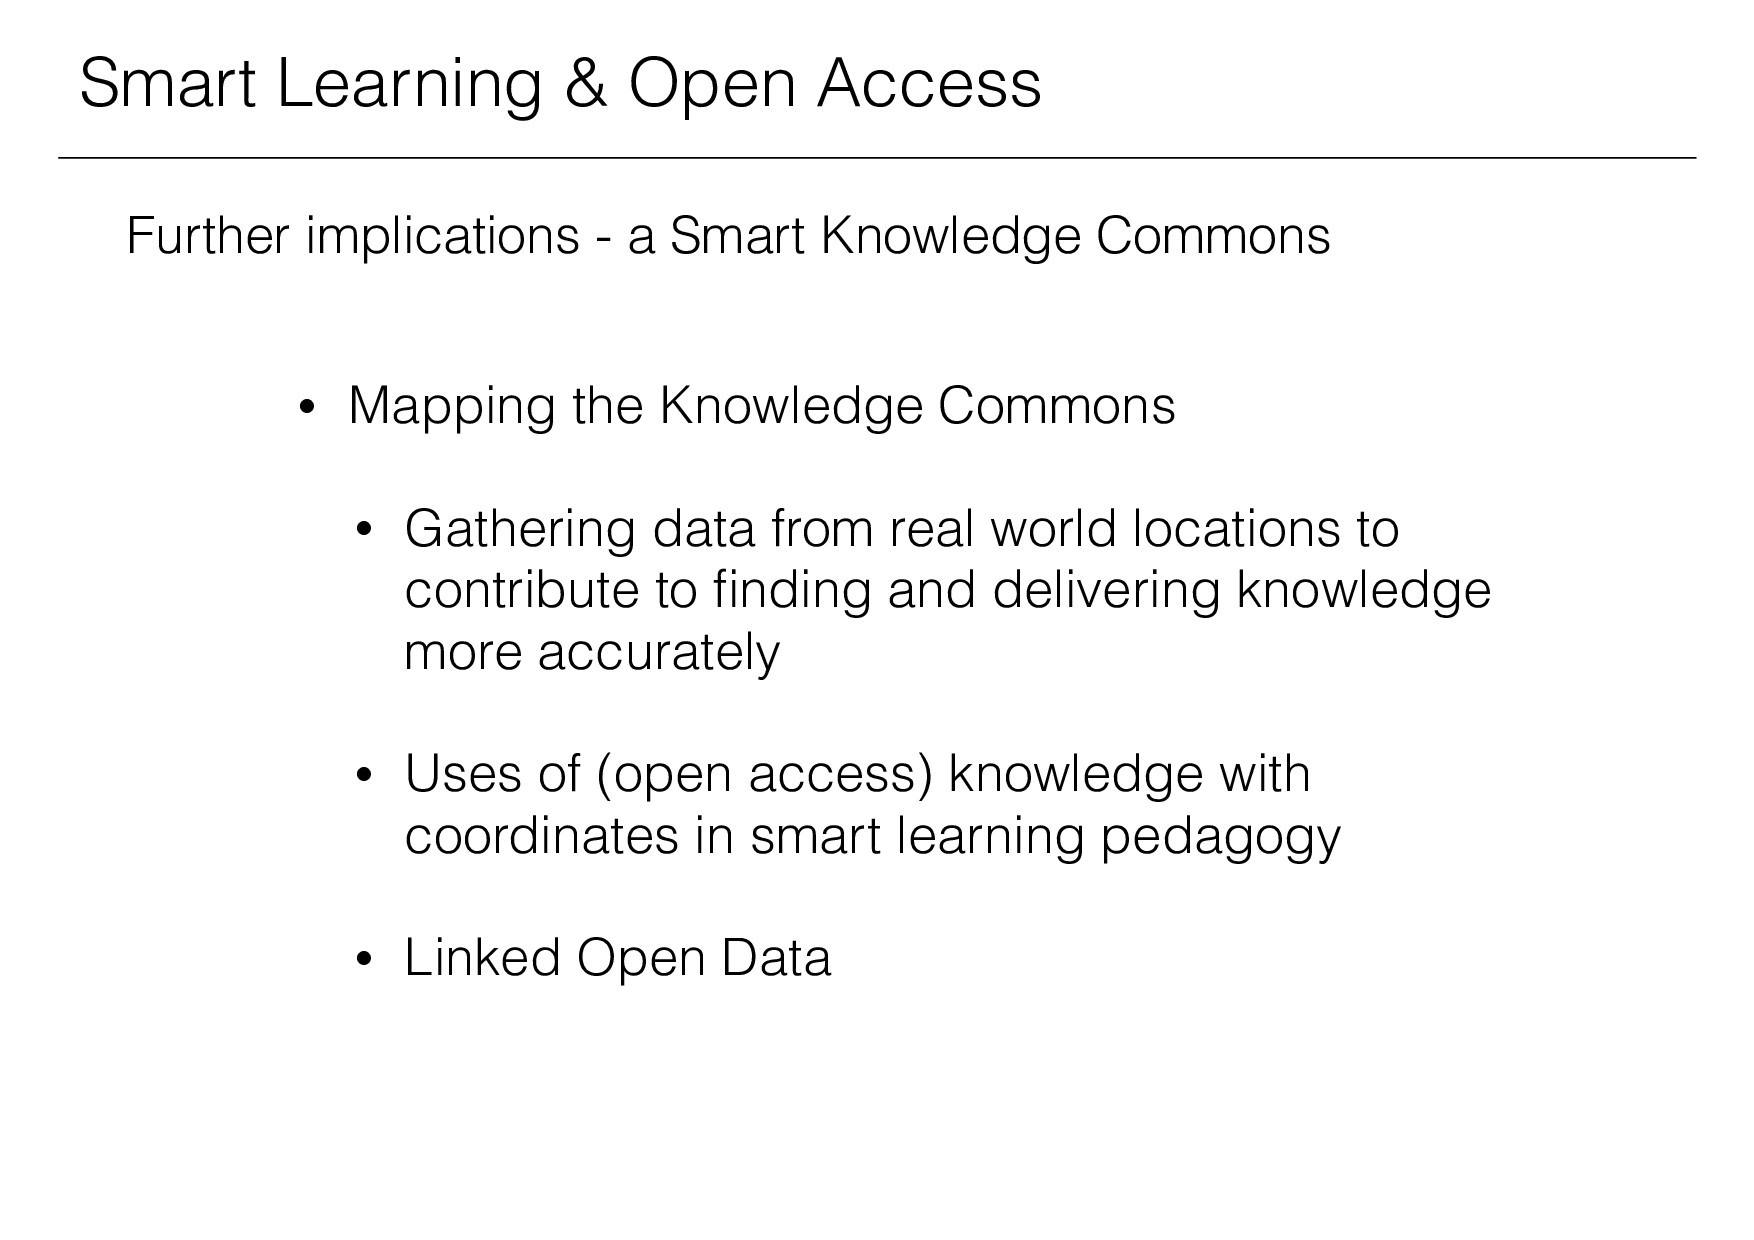 Smart Learning & Open Access Further implicatio...